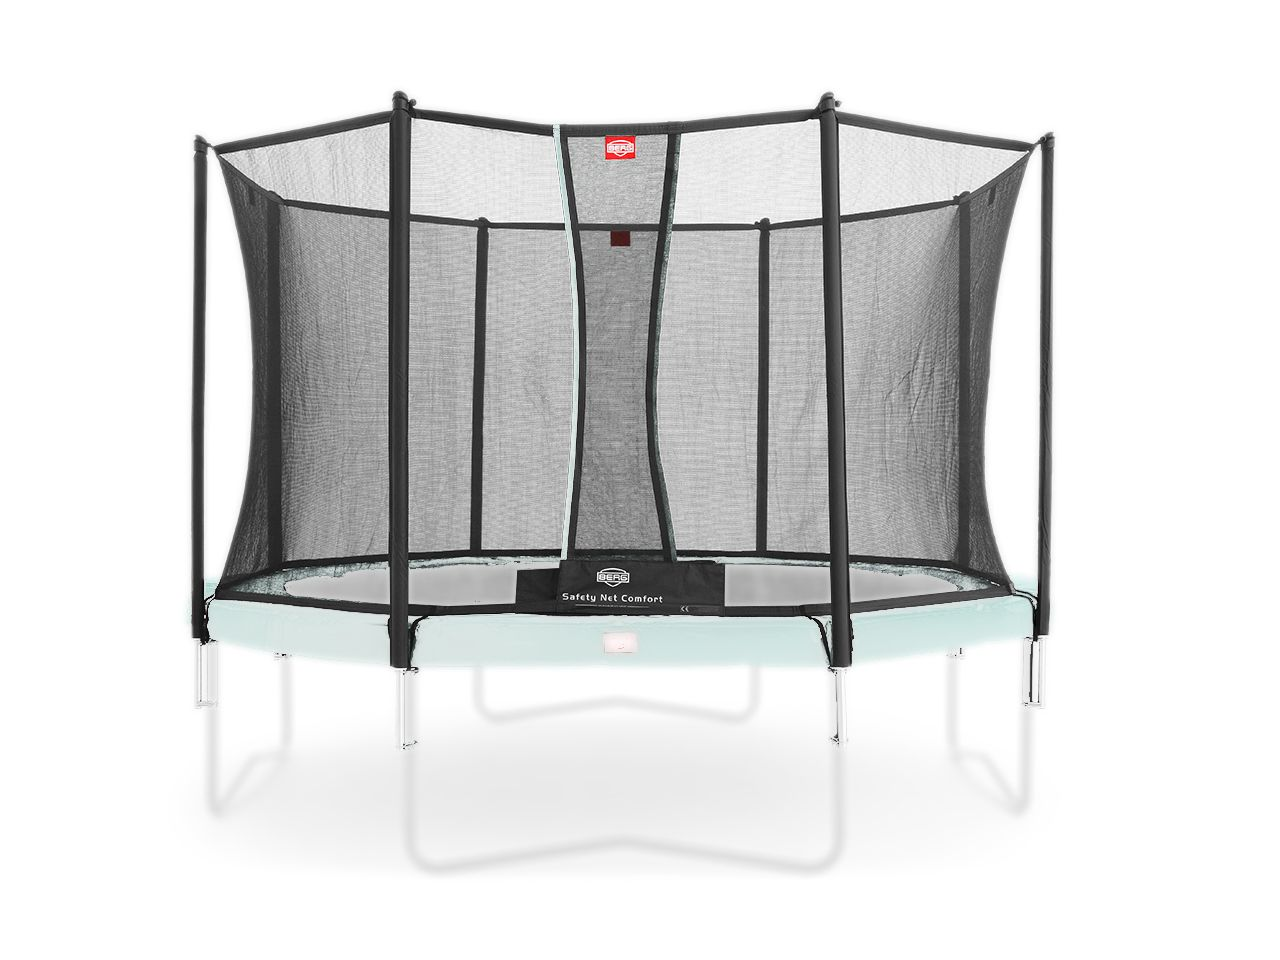 BERG Safety Net Comfort 430 (14 ft)